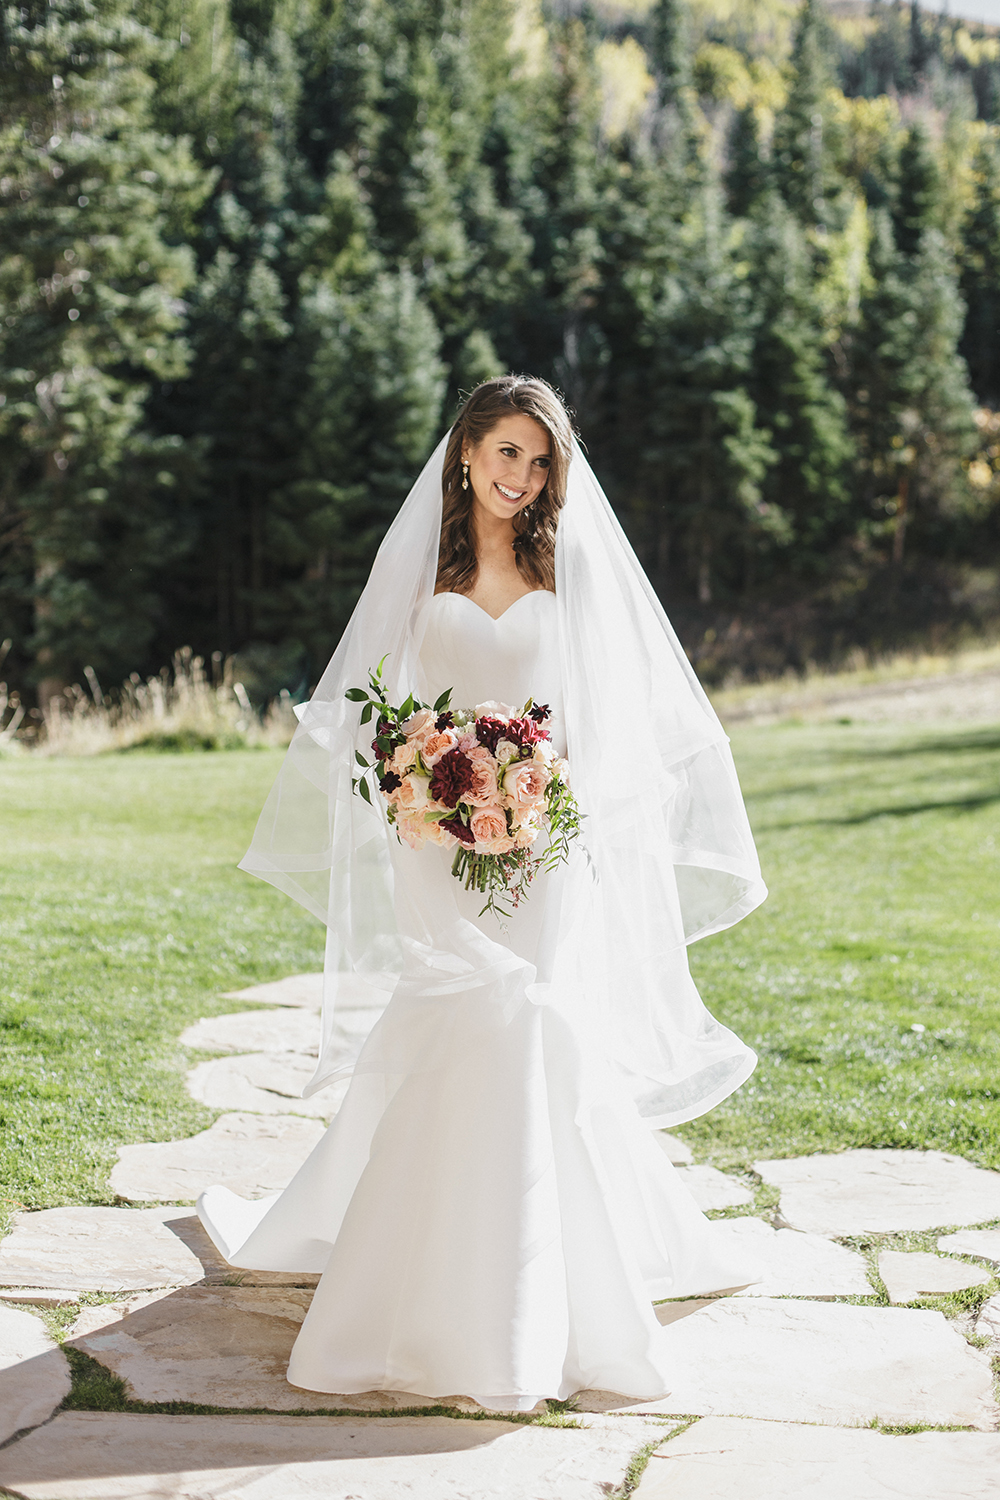 St Regis Deer Valley Wedding60.jpg